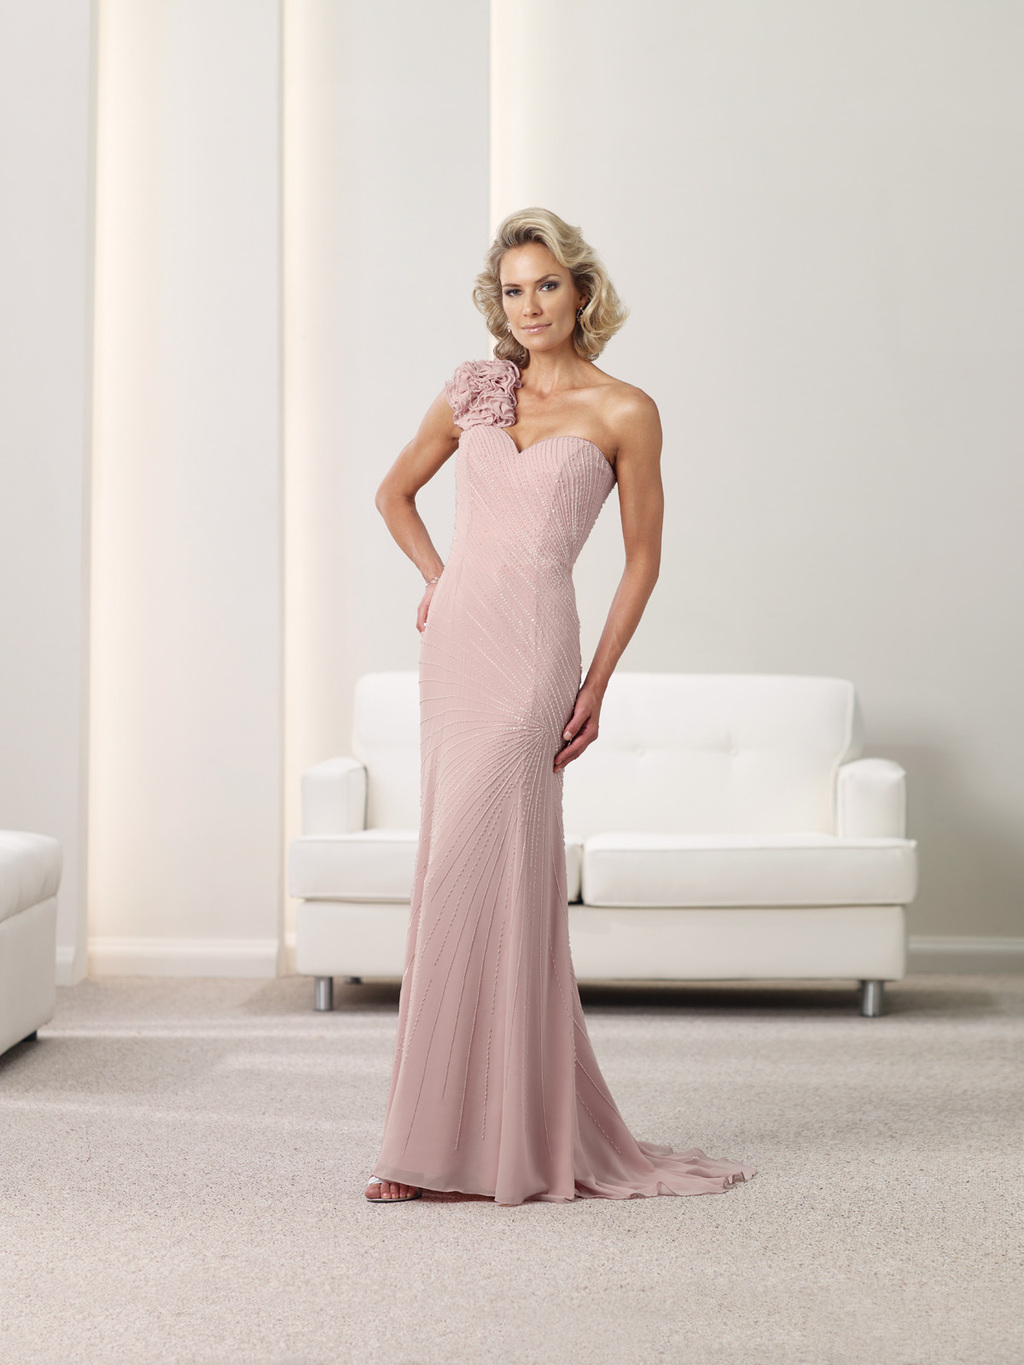 Chic-mother-of-the-bride-dresses-wedding-fashion-dos-and-donts-mon-cheri-7.full